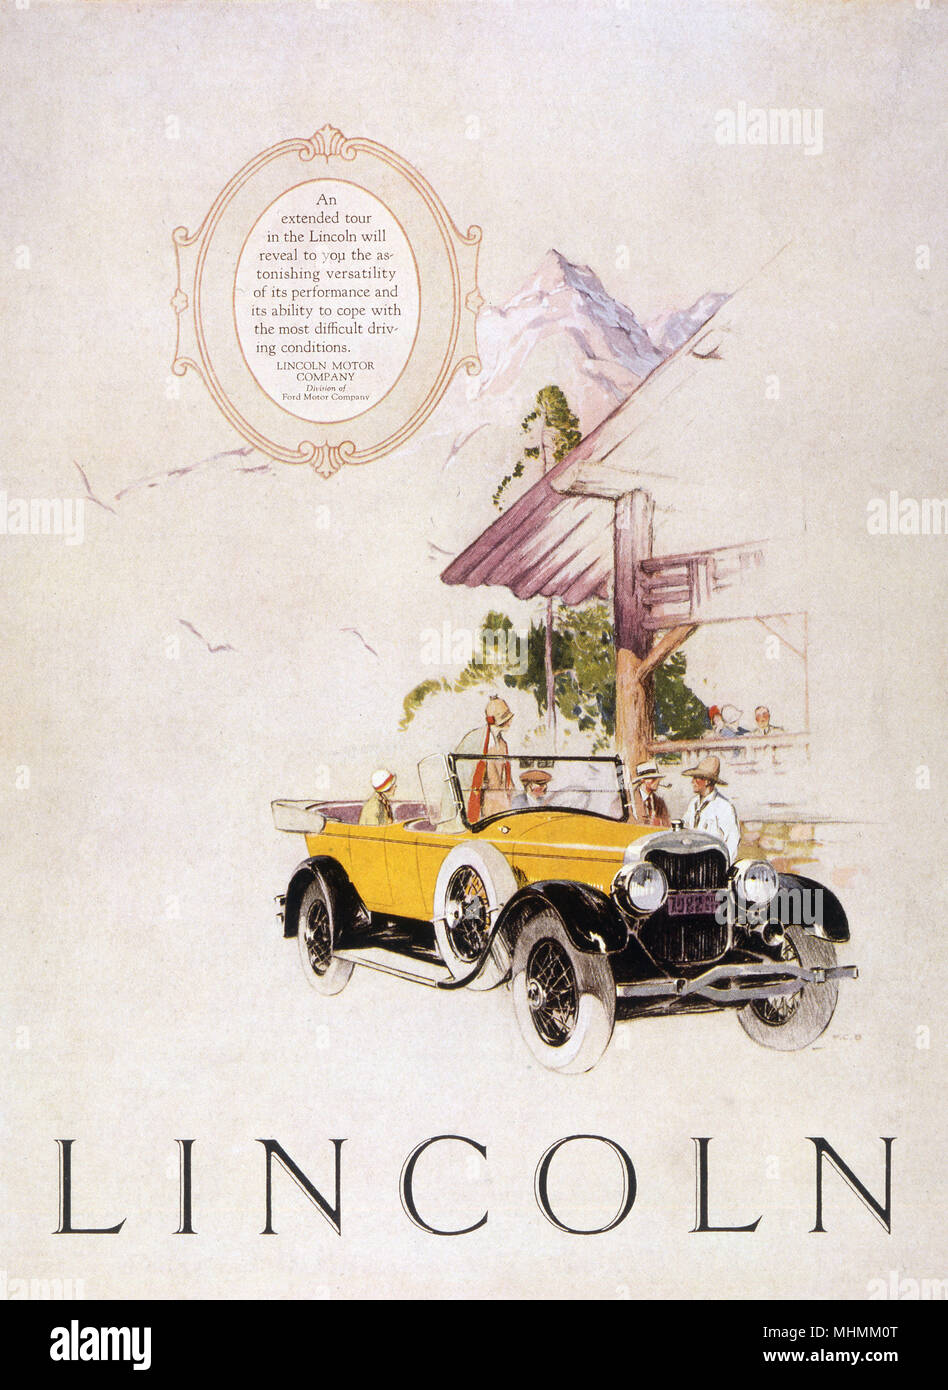 A Lincoln convertible.       Date: 1925 - Stock Image